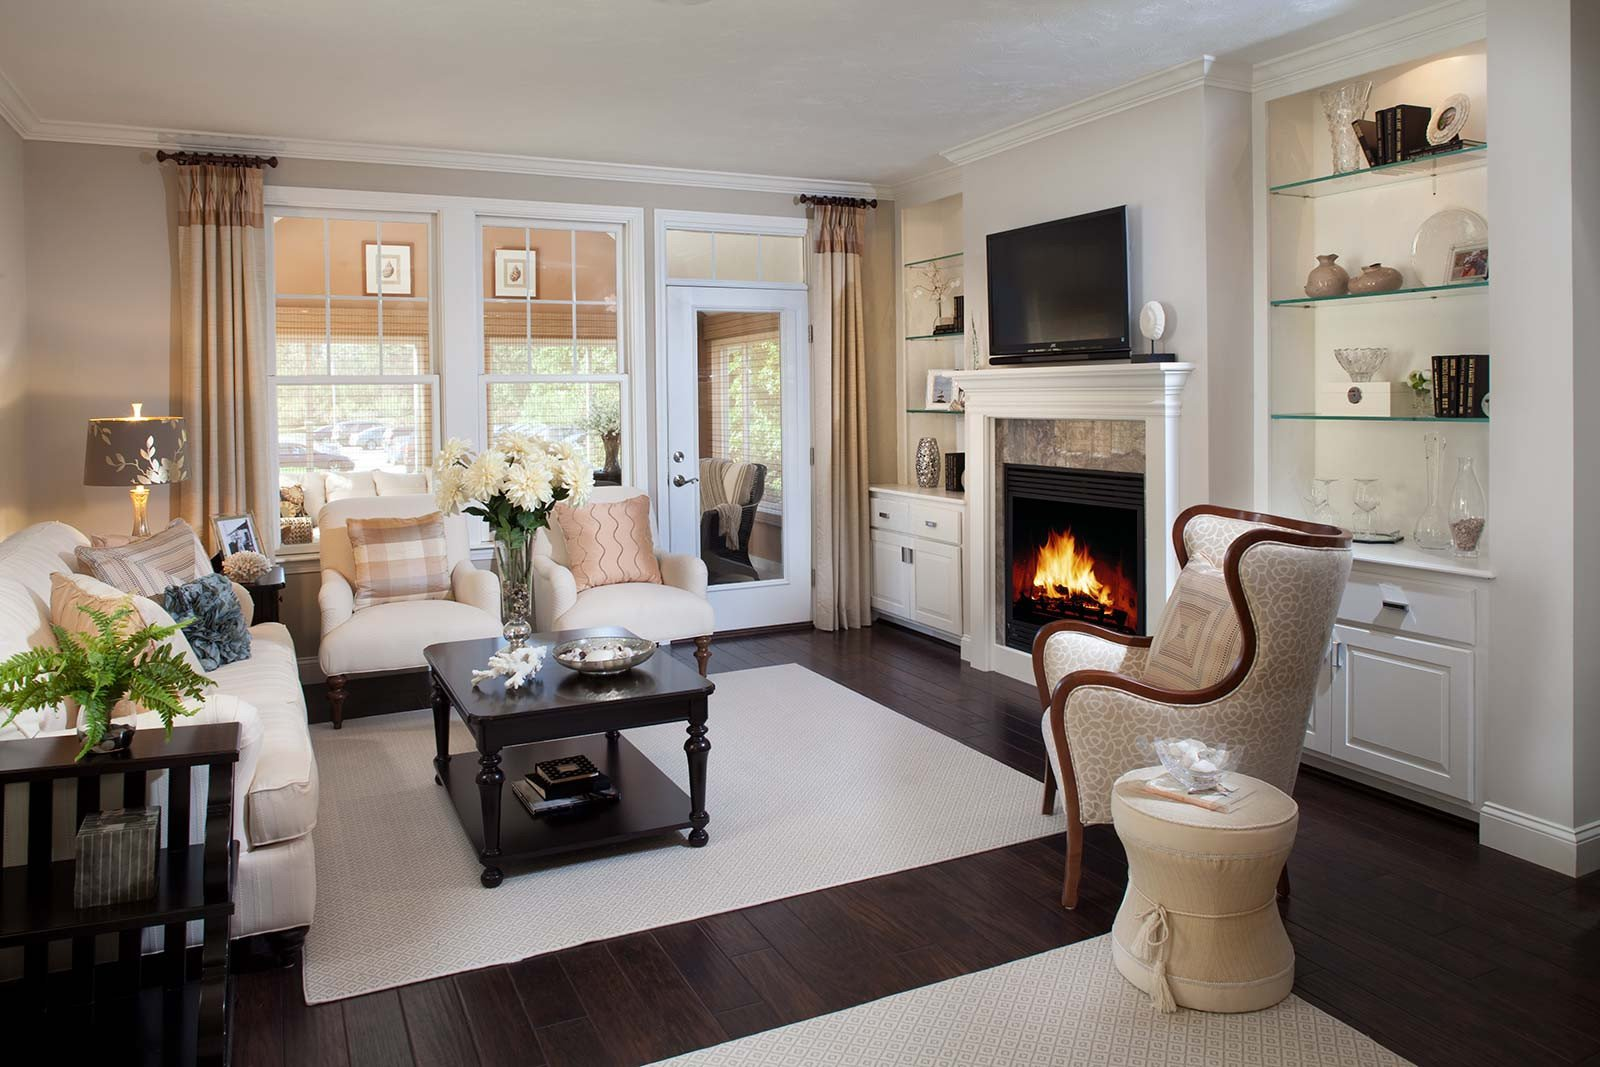 Cape Cod Style Home Decor Luxury Fireplace Decorating Ideas for Your New Retirement Home On Cape Cod